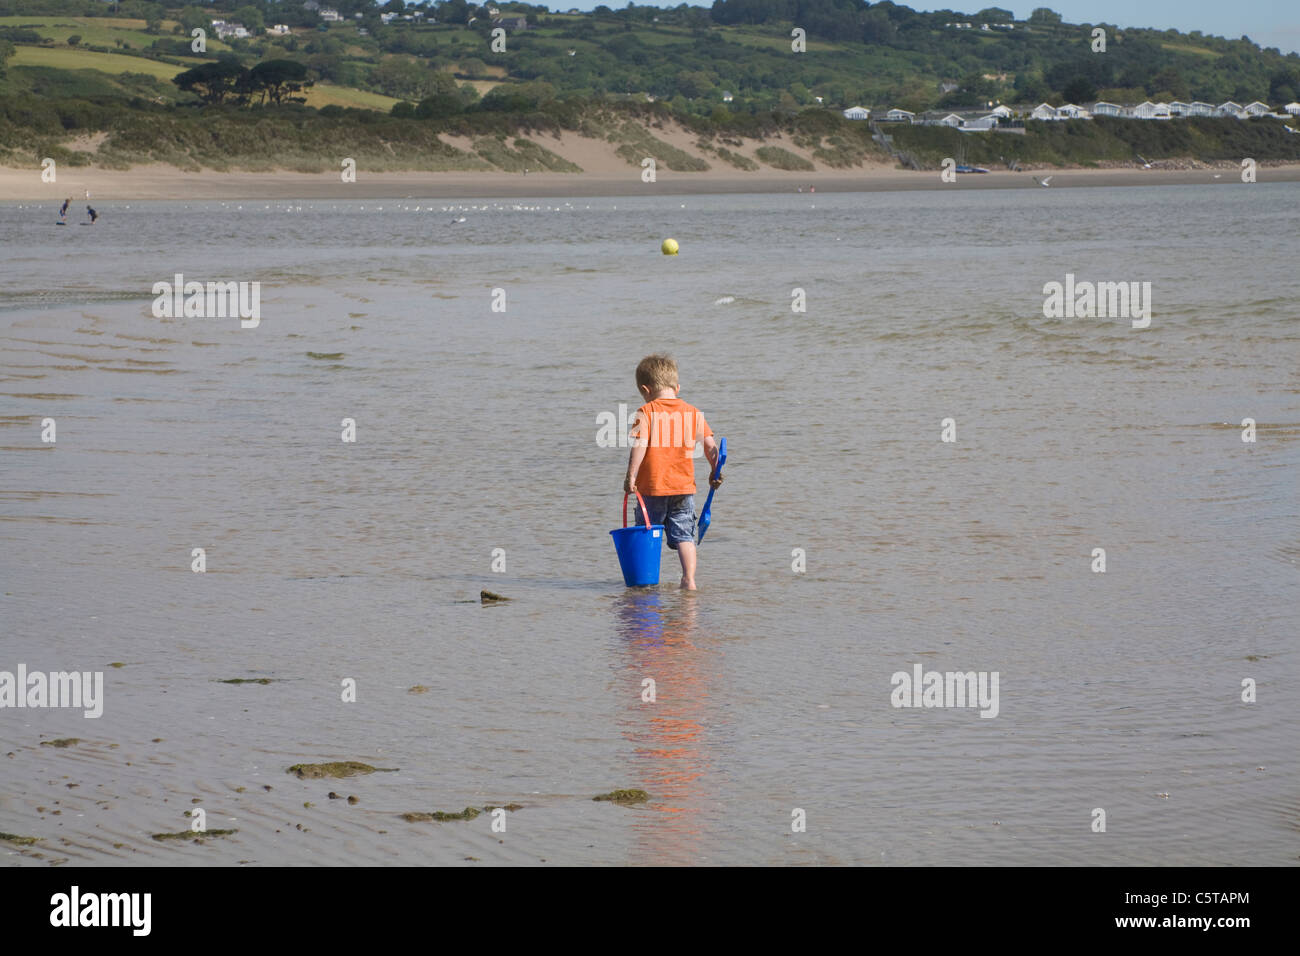 Abersoch Gwynedd North Wales UK Small blonde haired boy paddling in the shallow water carrying a blue bucket and - Stock Image